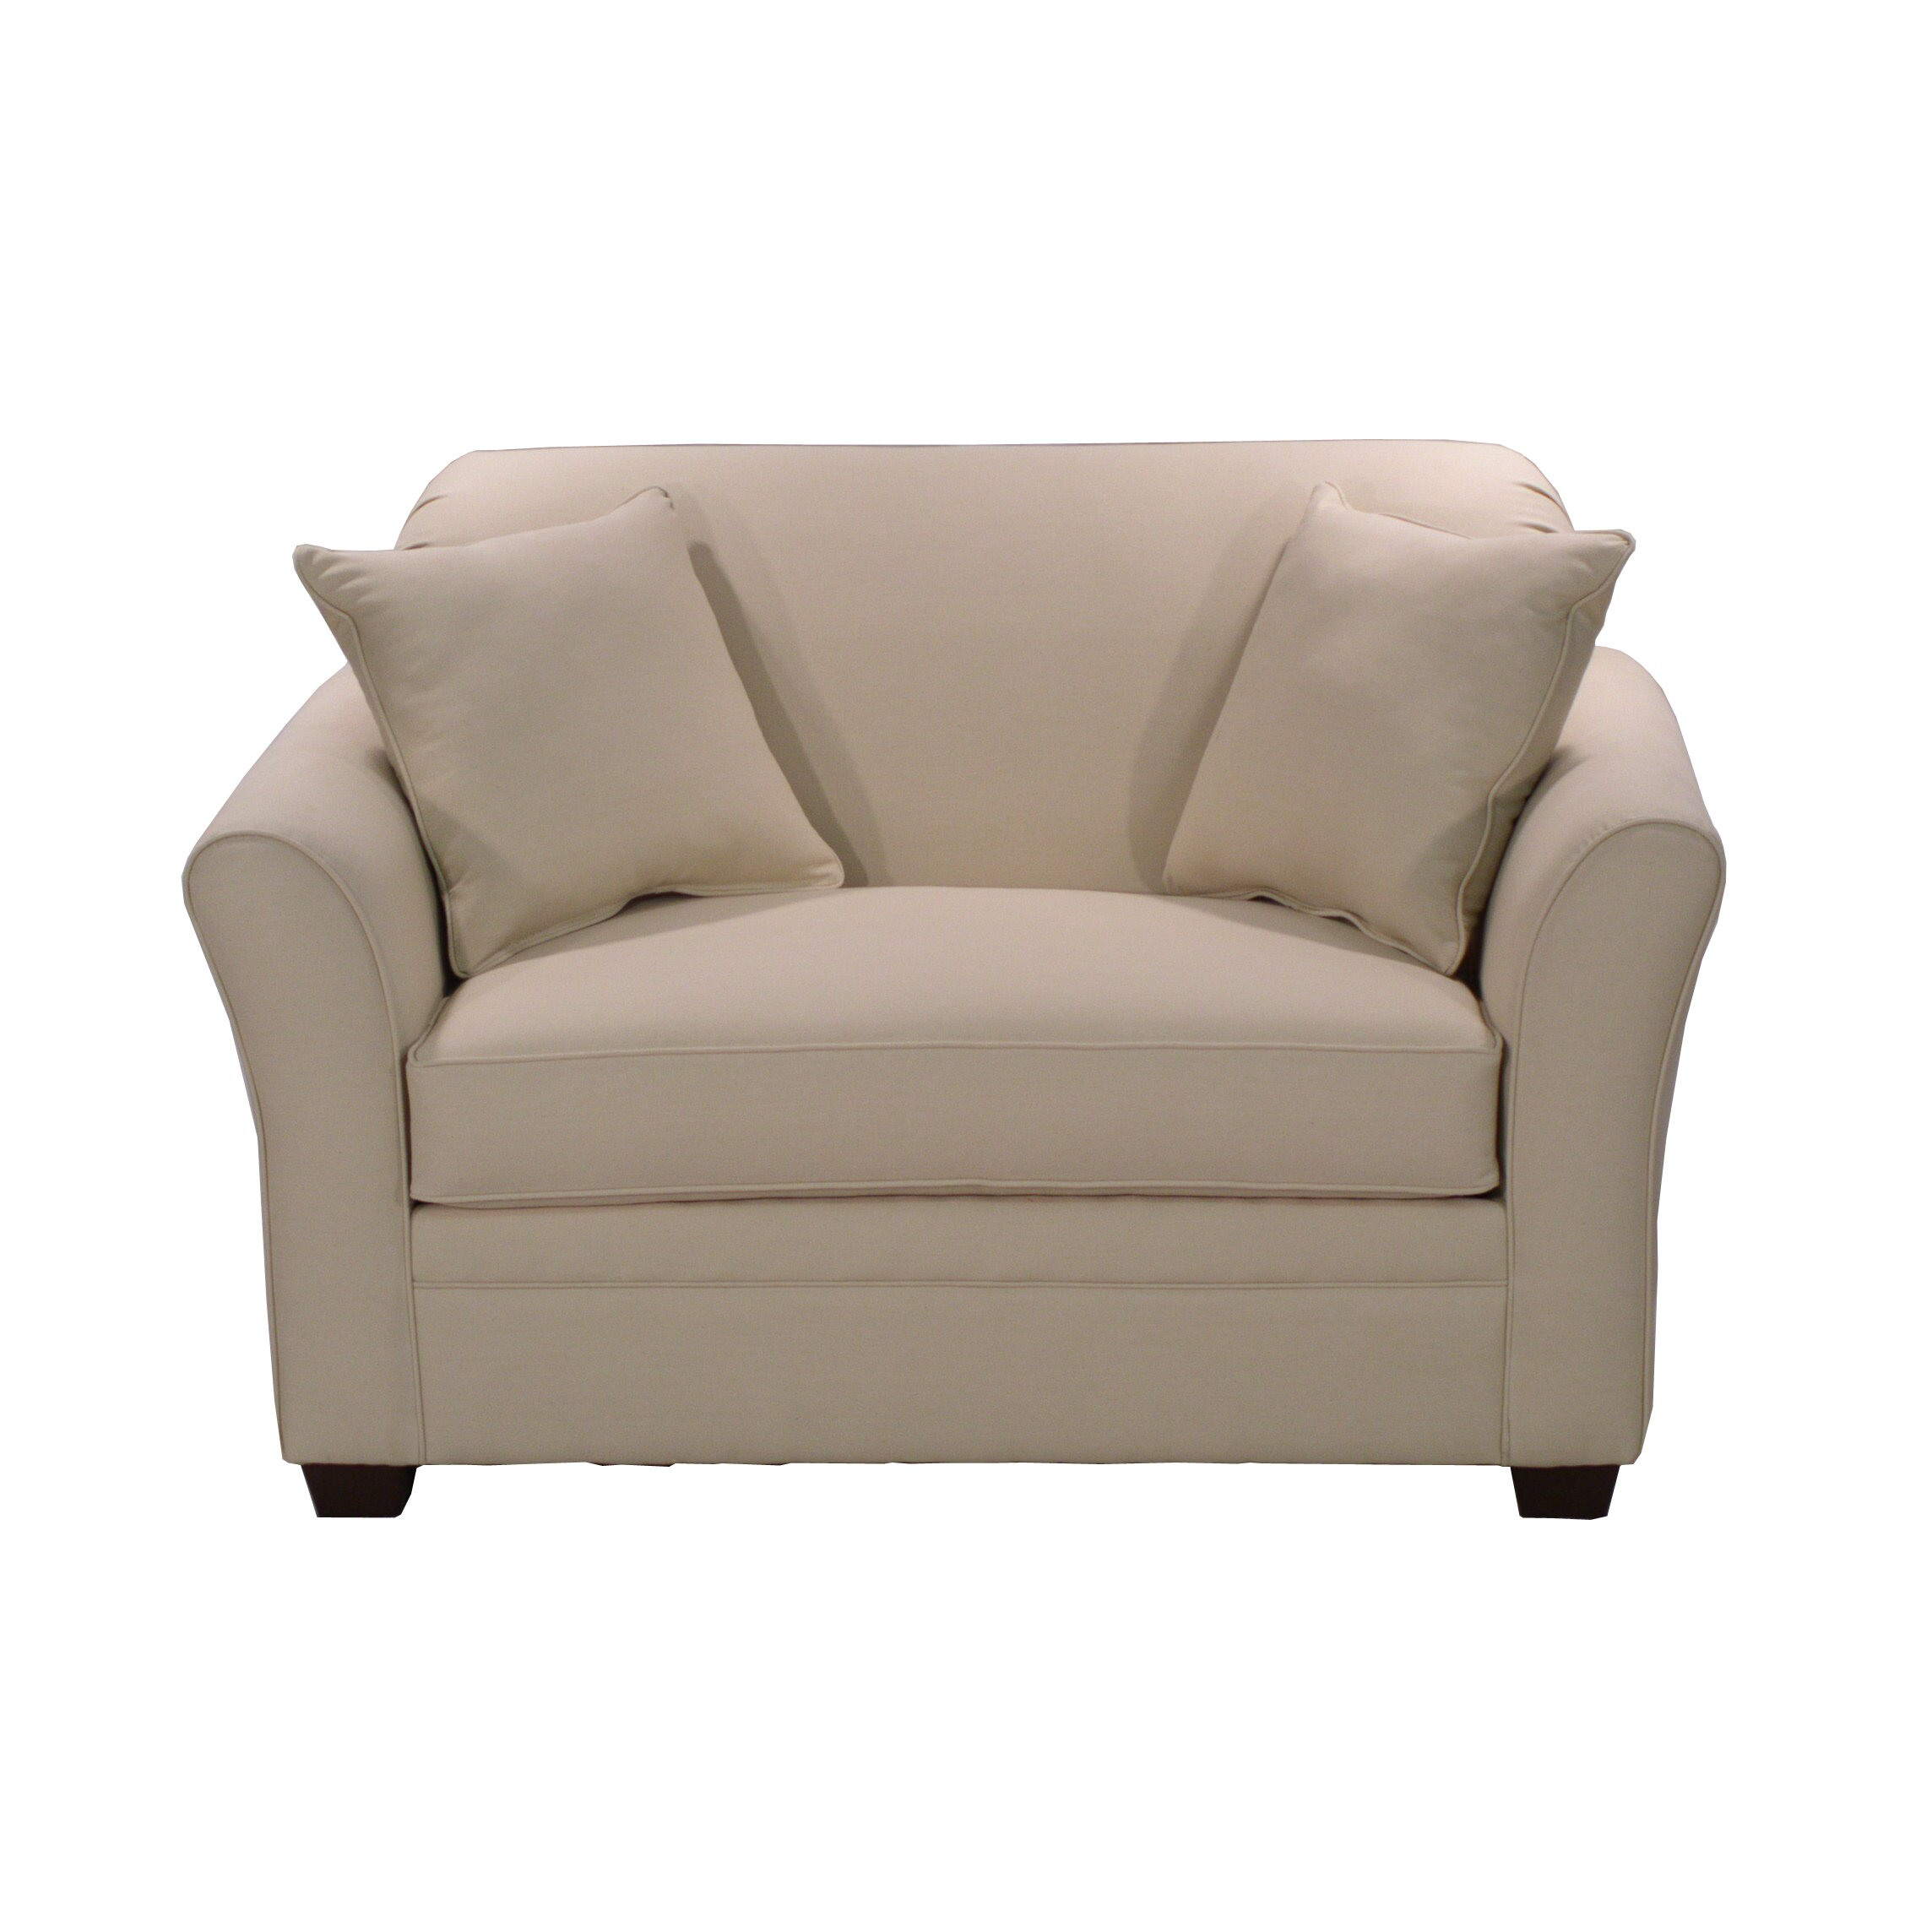 Wildon Home ® Twin Sleeper Loveseat & Reviews